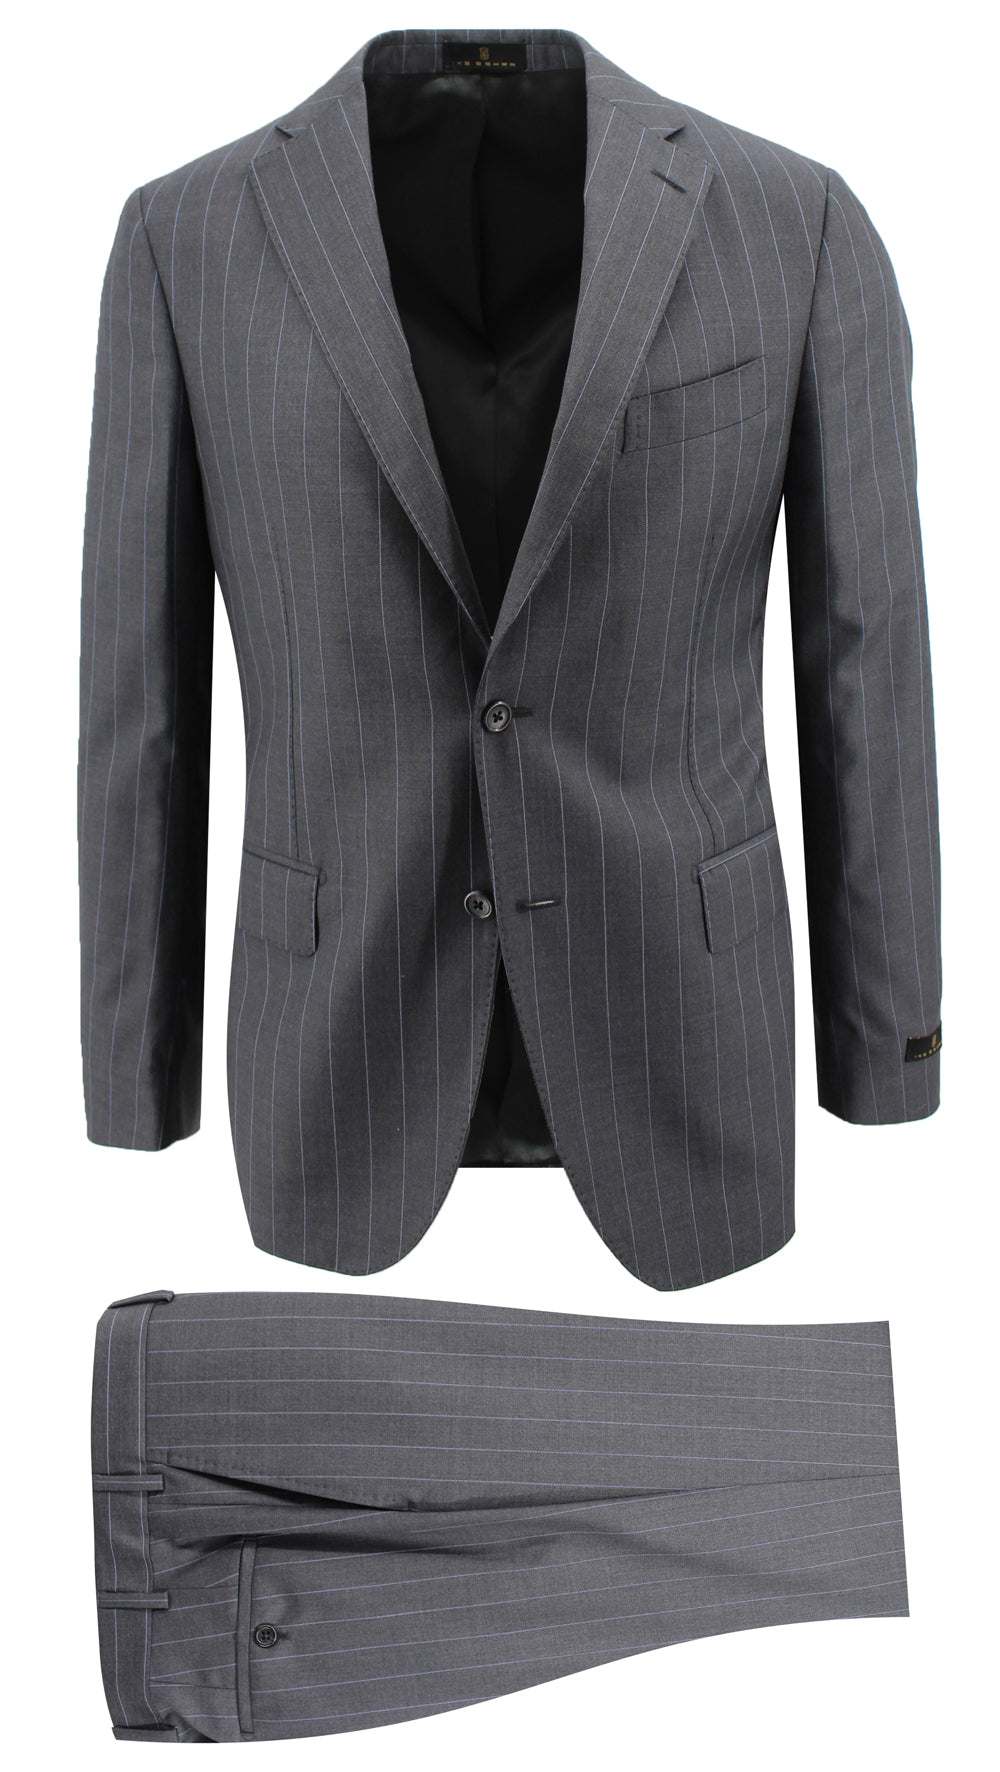 Charcoal with Sky Blue Pinstripe Suit